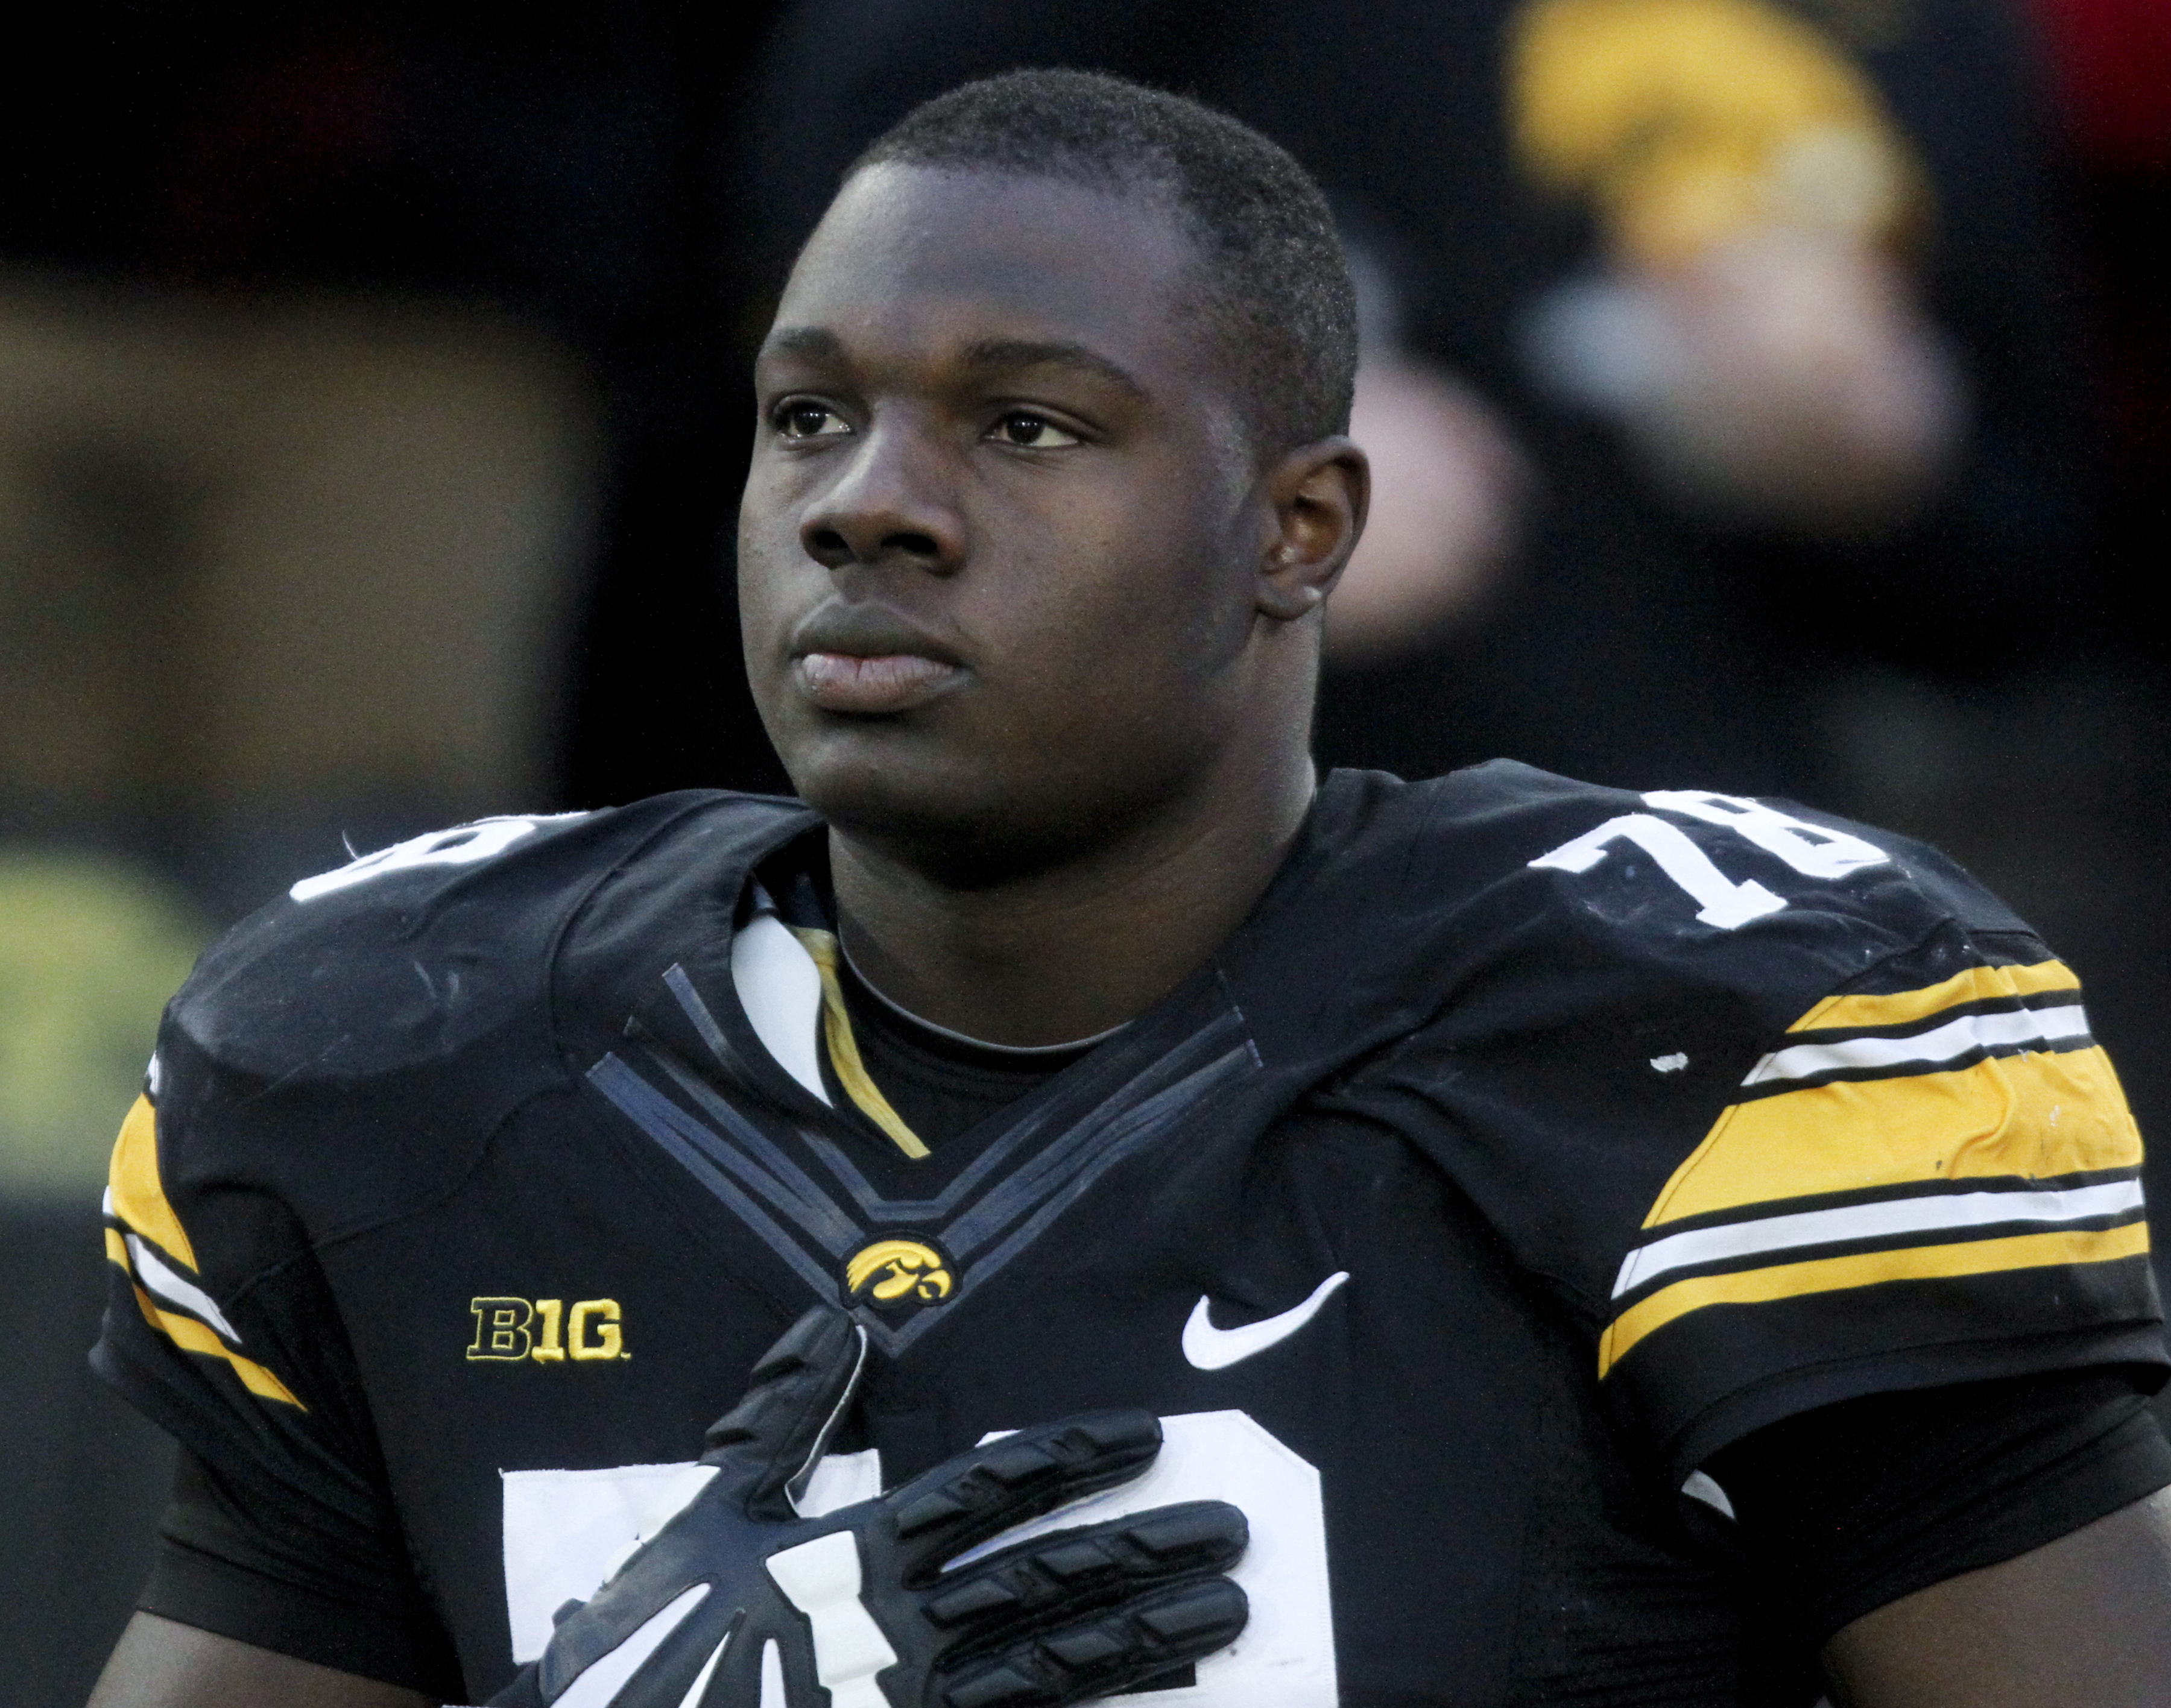 sale retailer ae8b6 d1a9f JAMES DANIELS DECLARES FOR THE NFL DRAFT - Black Heart Gold ...